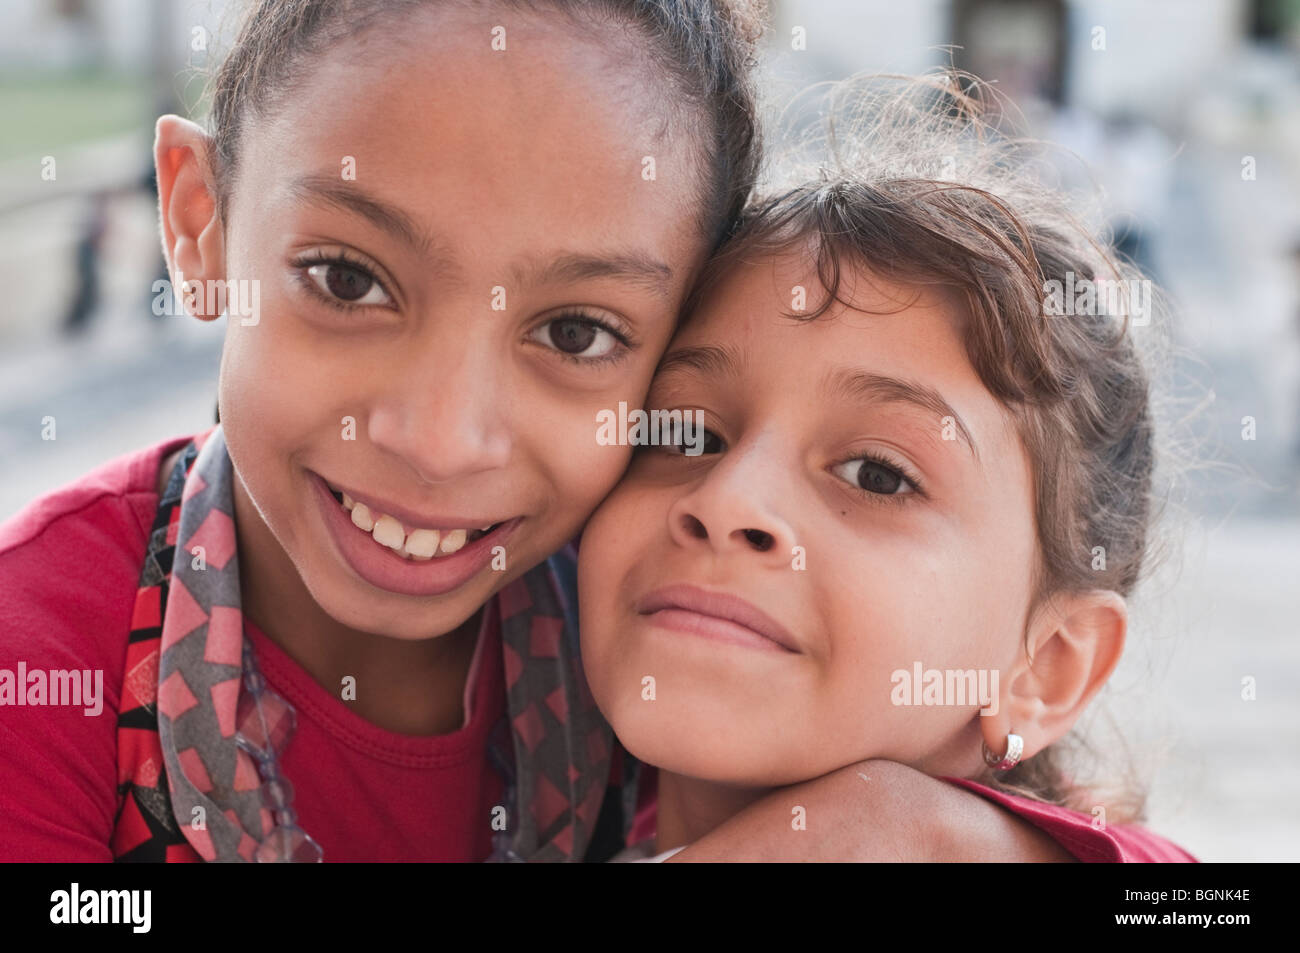 Two lovely Egyptian young girls with large almond eyes - Stock Image